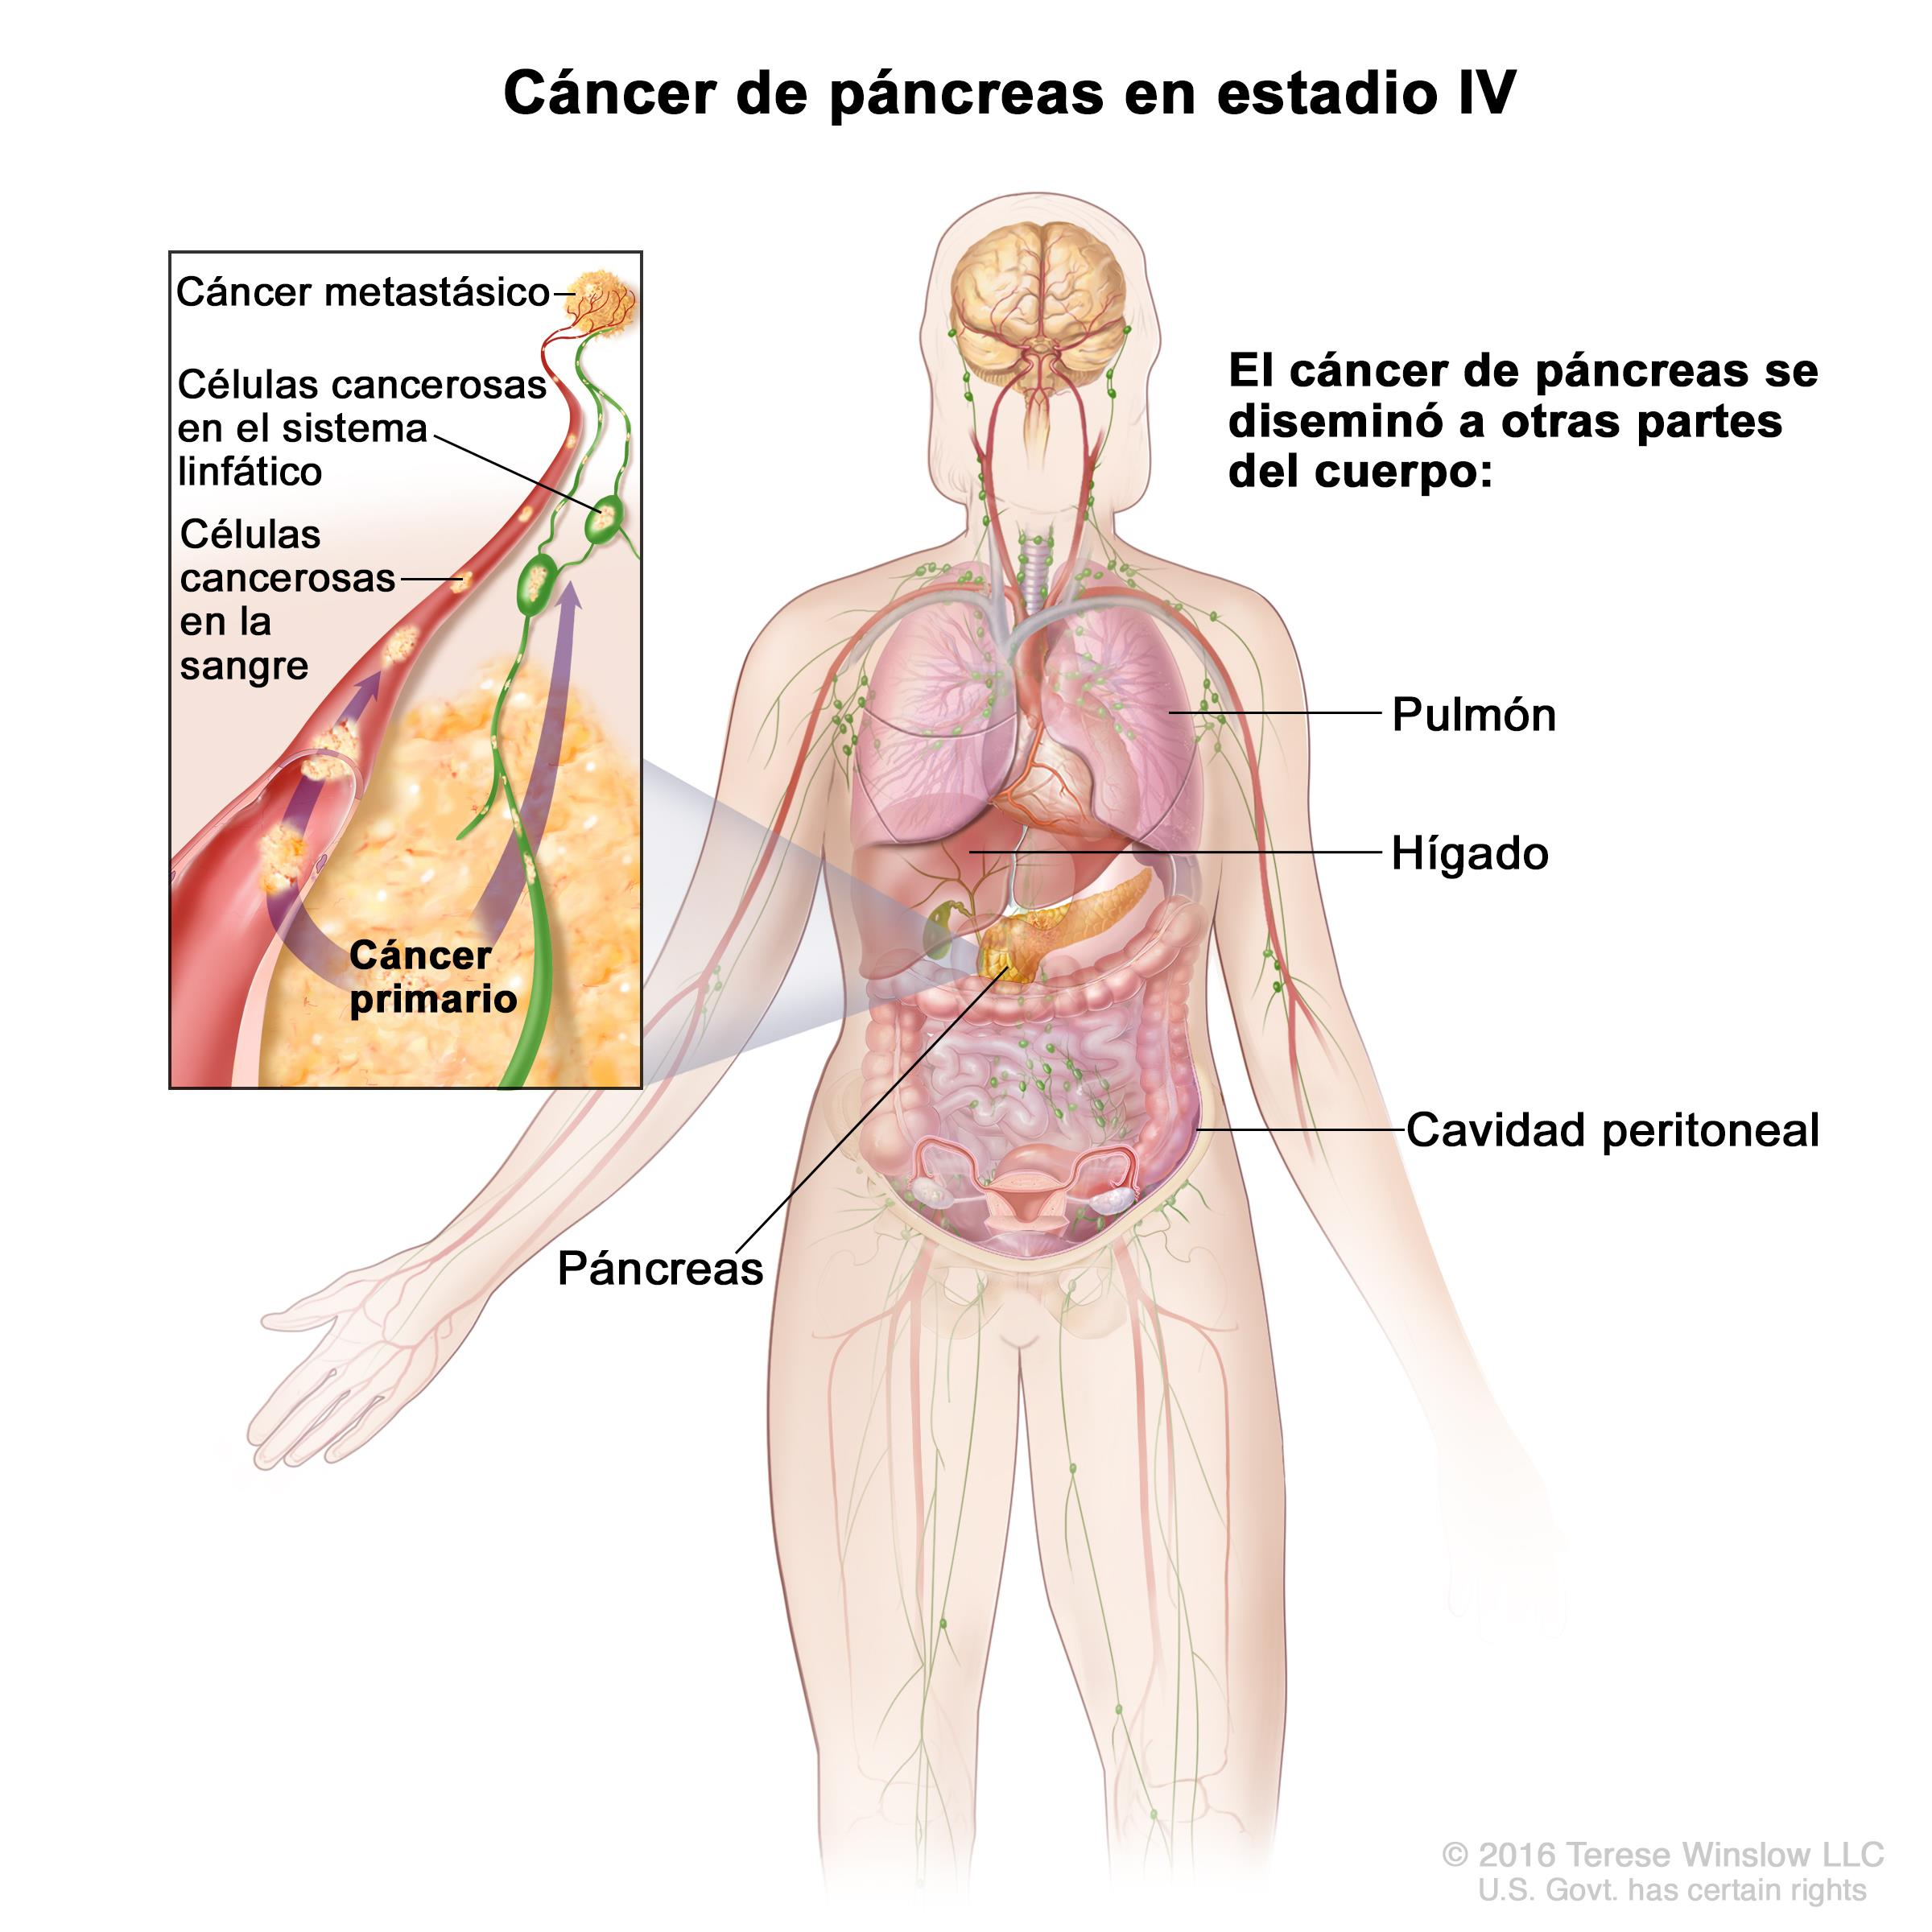 cancer de pancreas e higado etapa final